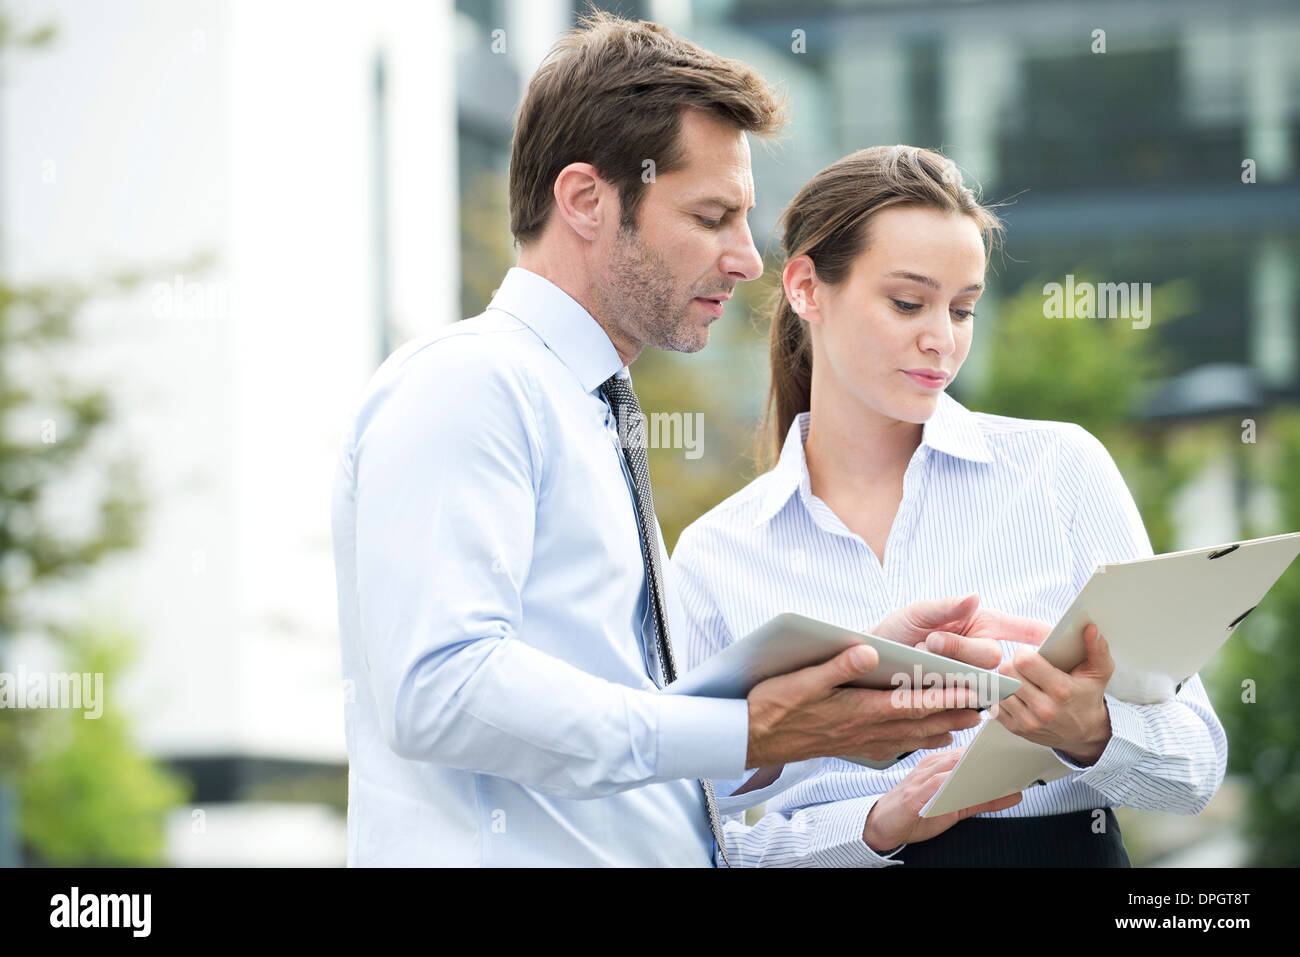 Business associates collaborating using digital tablet - Stock Image